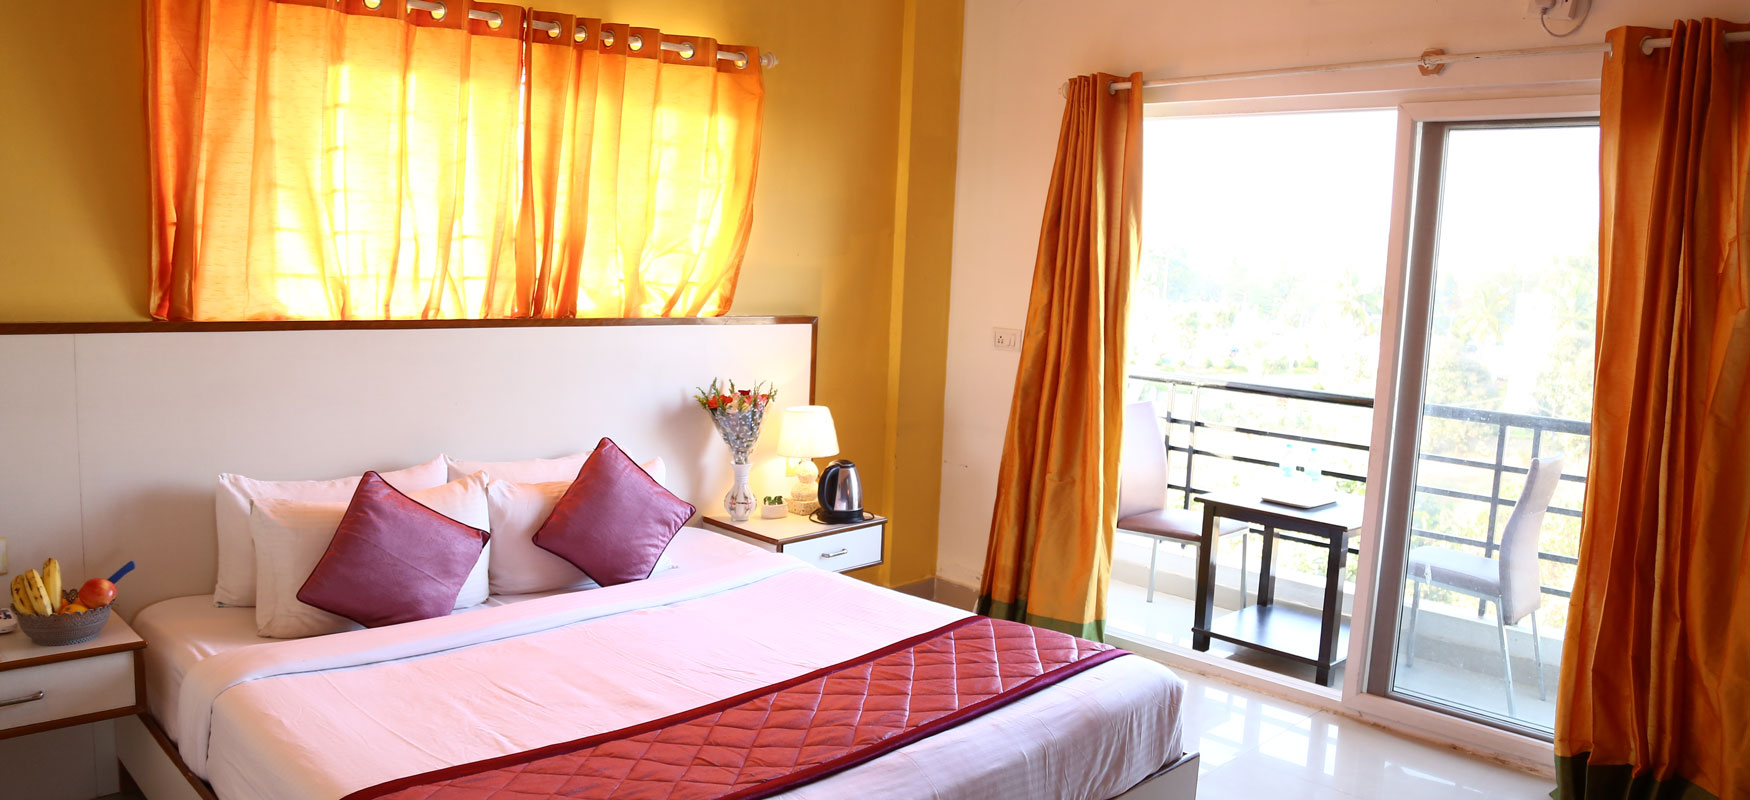 Hotels near bangalore airport | Airport Gateway is well known hotel near kempegowda international airport successfully serving people for past 10 years.